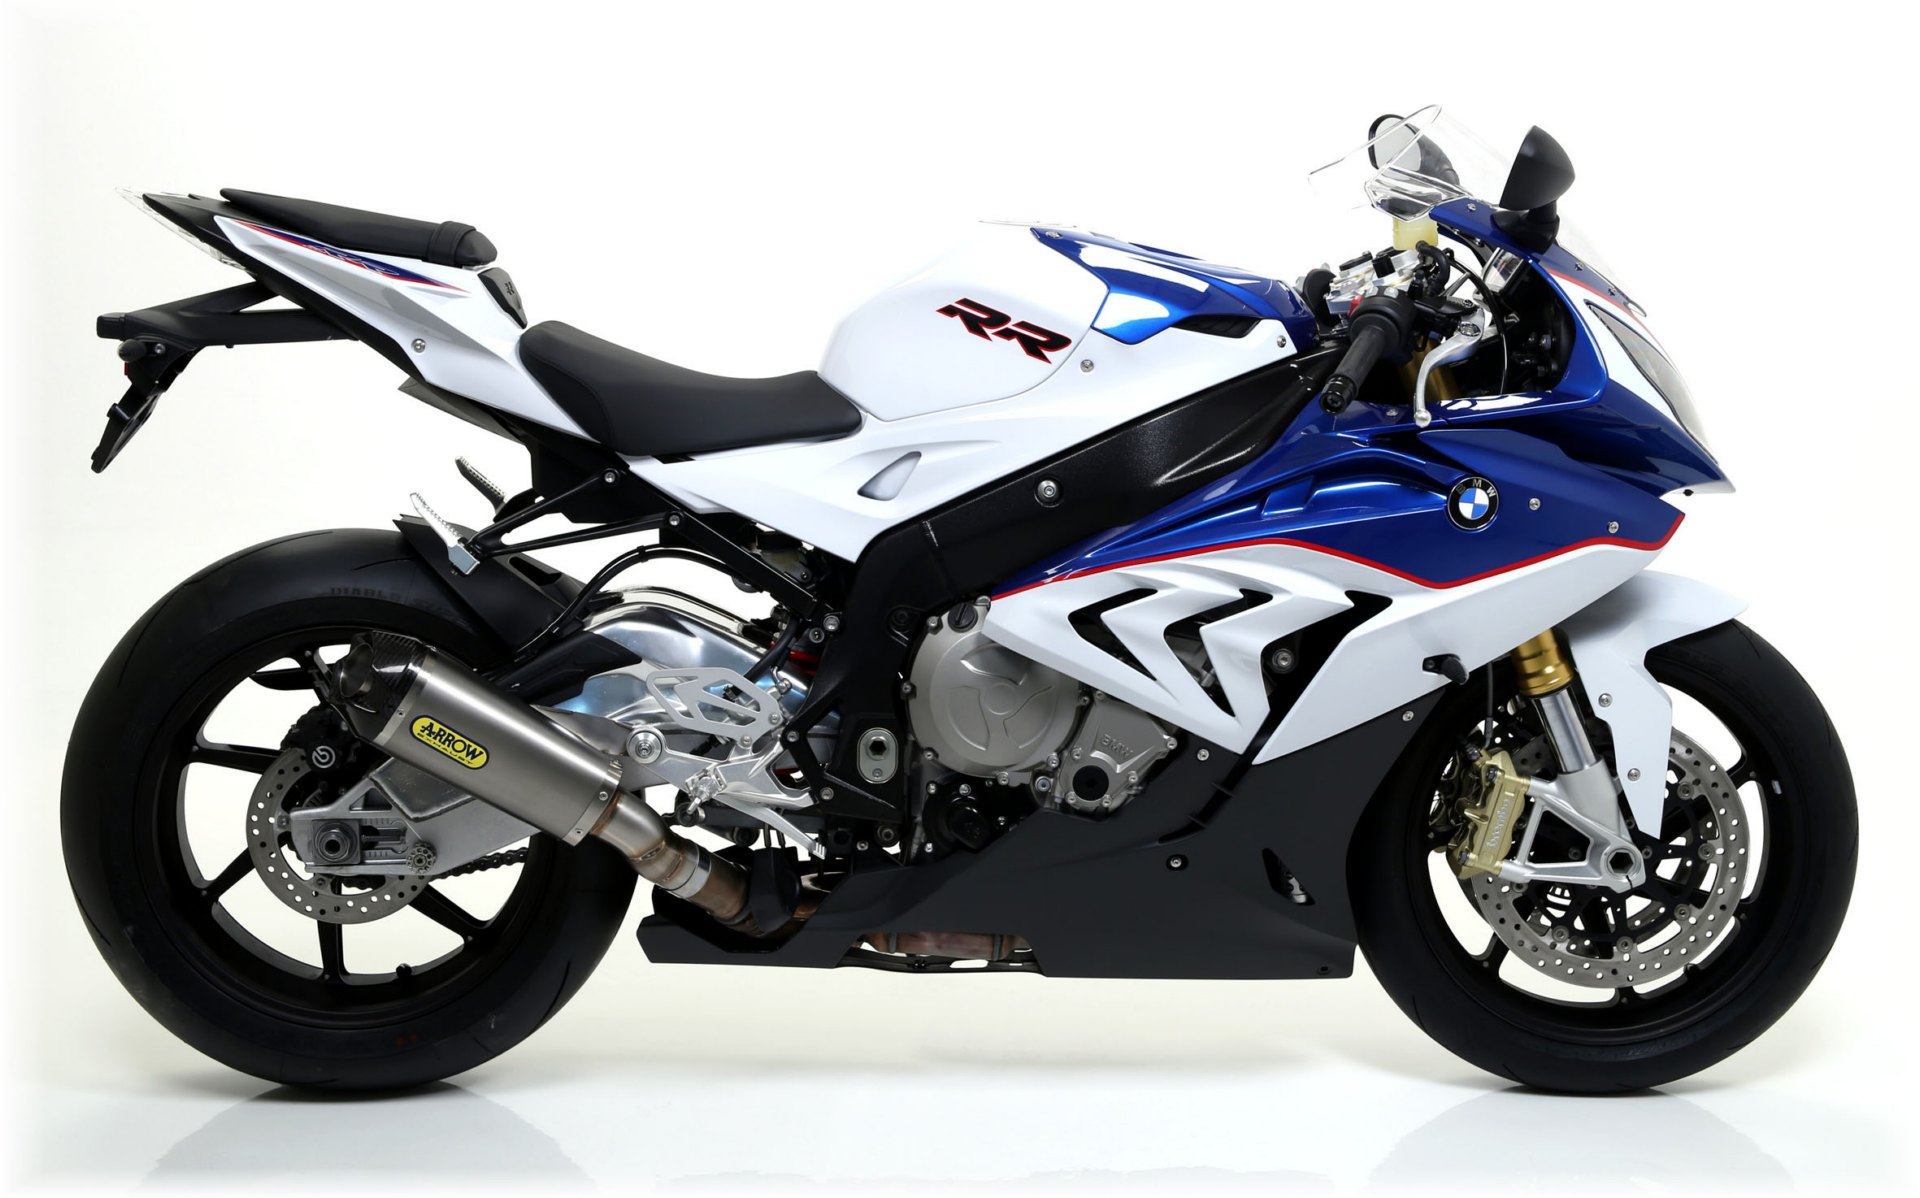 Bmw S1000rr For Sale >> 2015 BMW S1000RR Gets Full Range of Arrow Exhausts - autoevolution